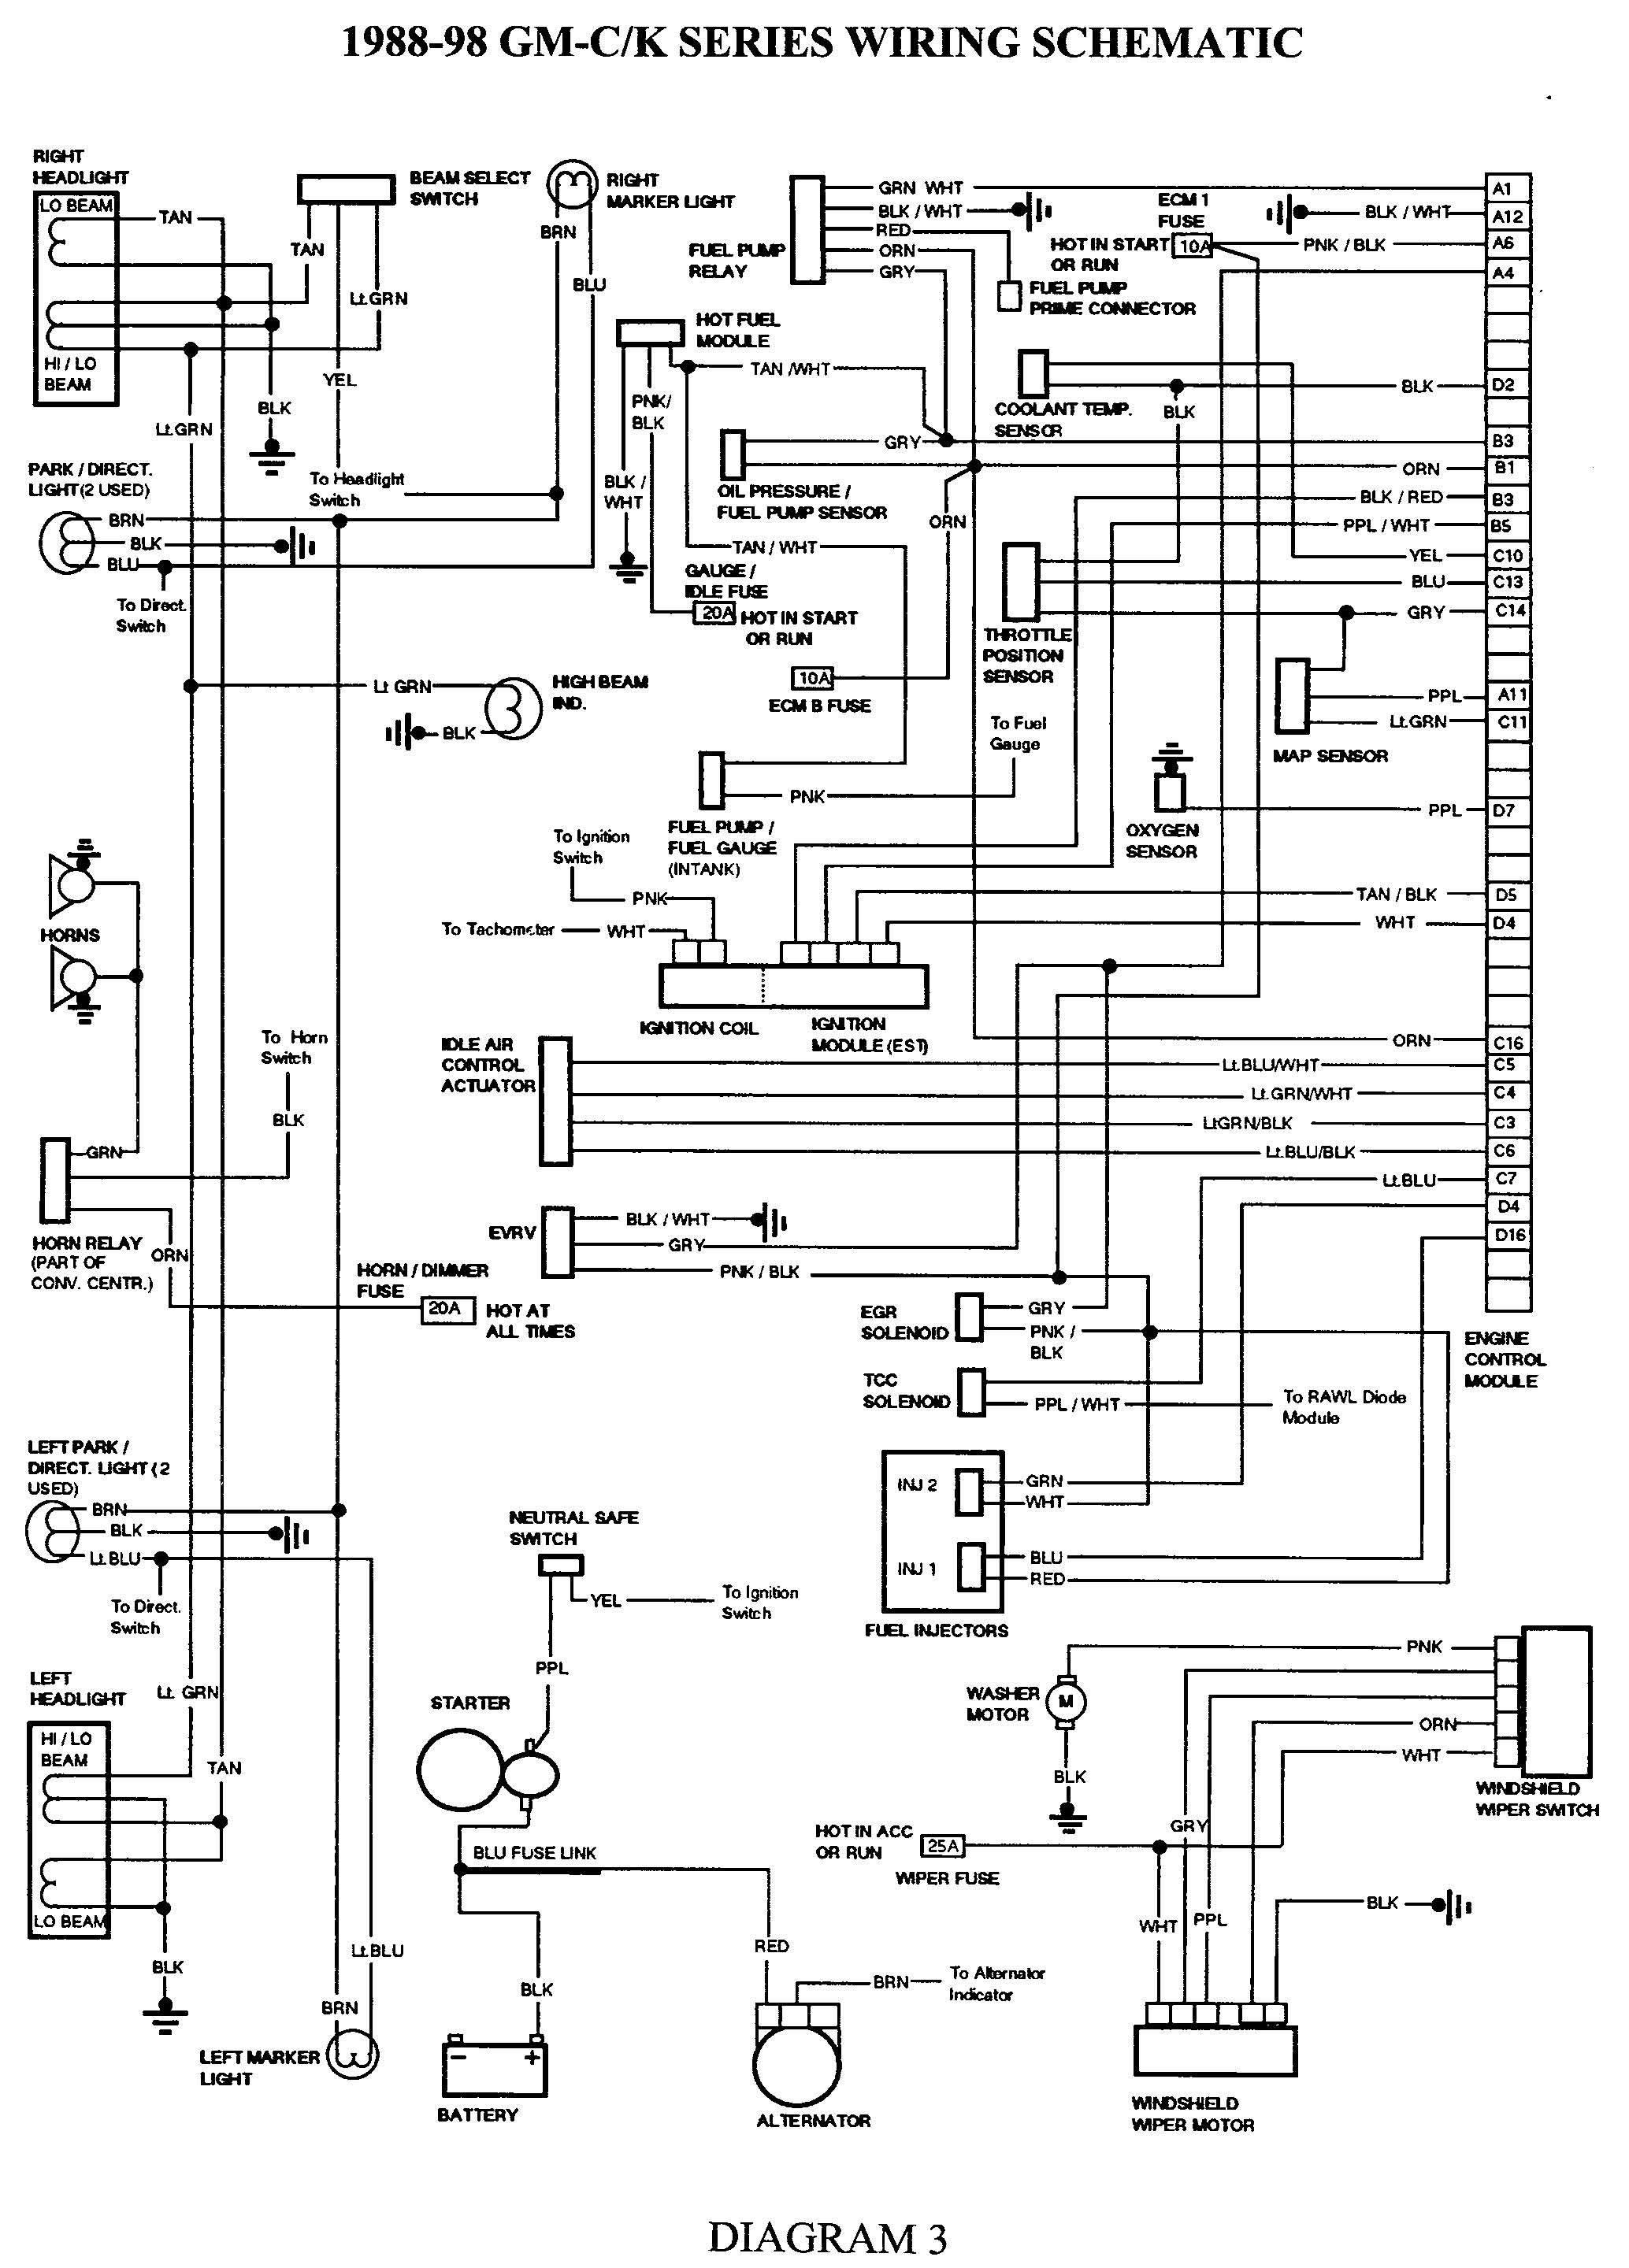 Gmc Truck Wiring Diagrams On Gm Wiring Harness Diagram 88 98 | Kc - 1989 Chevy Truck Wiring Diagram